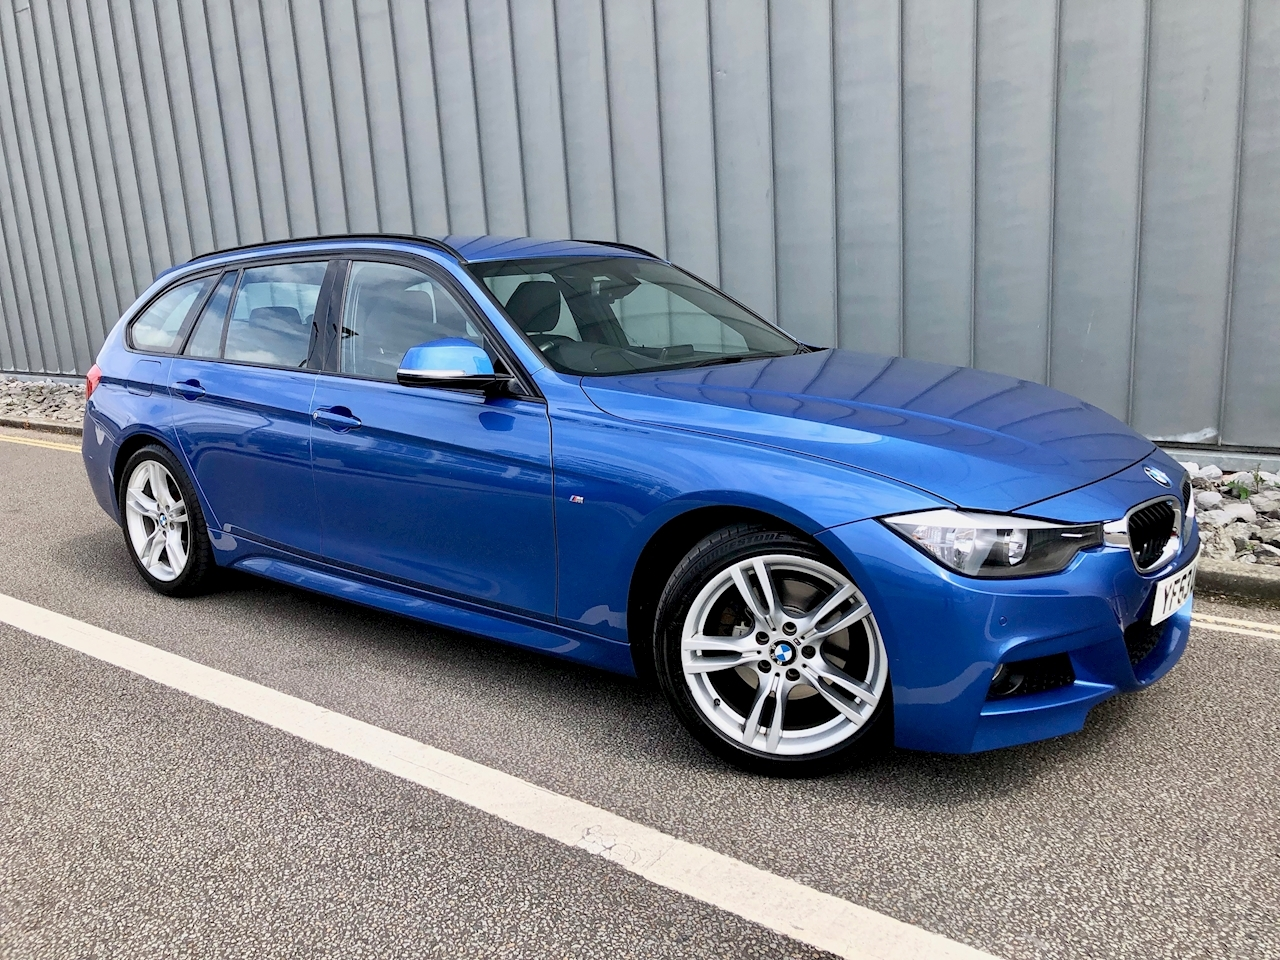 Used Bmw 3 Series 320d M Sport Touring Navigation Dab Radio Auto Boot Pdc Front And Rear Fsh M Sport 2013 Ray Phillips Cars Ltd